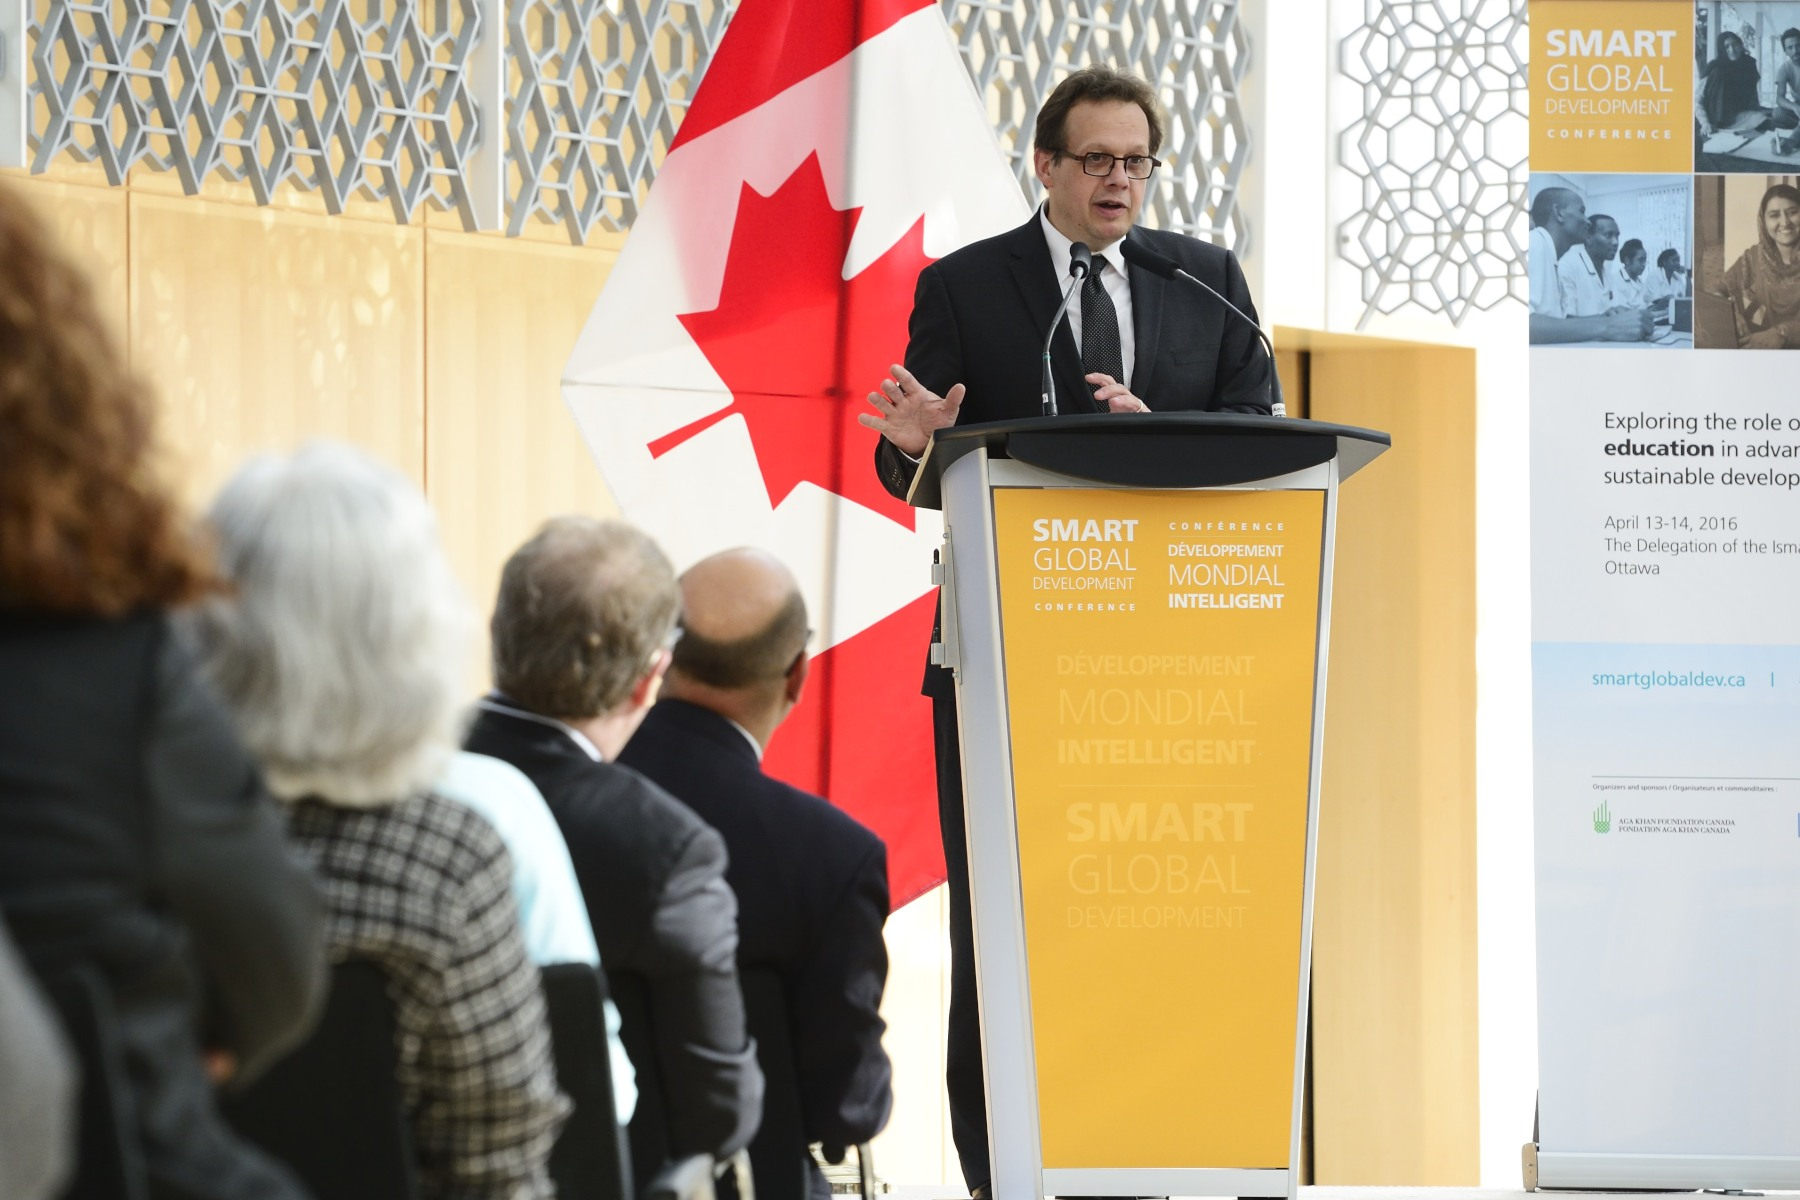 Mr. Jean Lebel, Président of the International Development Research Center, provided remarks before introducing the Governor General and inviting him to the podium.